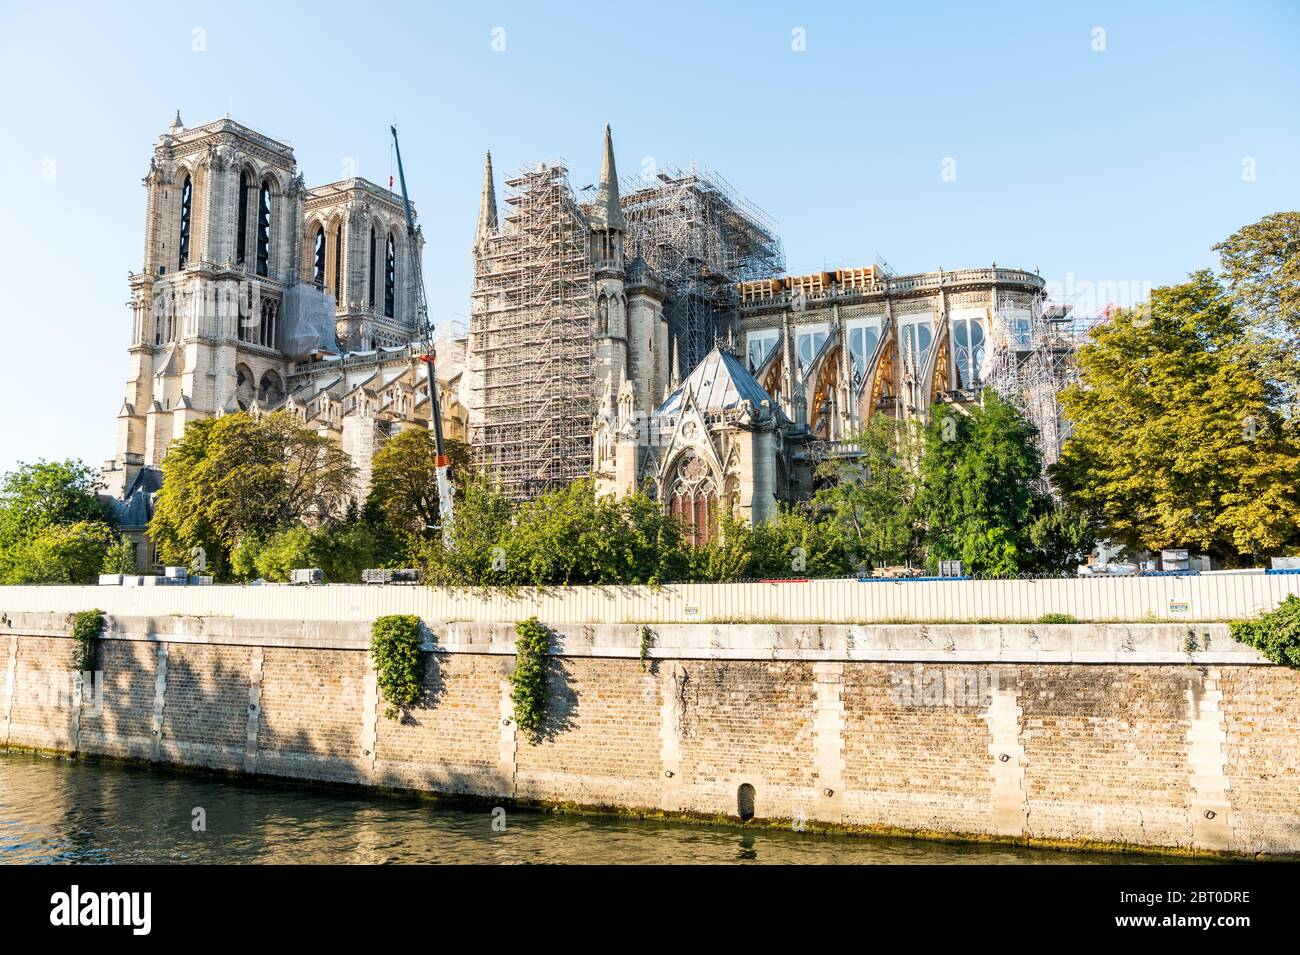 Reconstruction Of Notre Dame De Paris After The Big Fire A Medieval Catholic Cathedral On The Ile De La Cite In The 4th Arrondissement Of Paris Fran Stock Photo Alamy